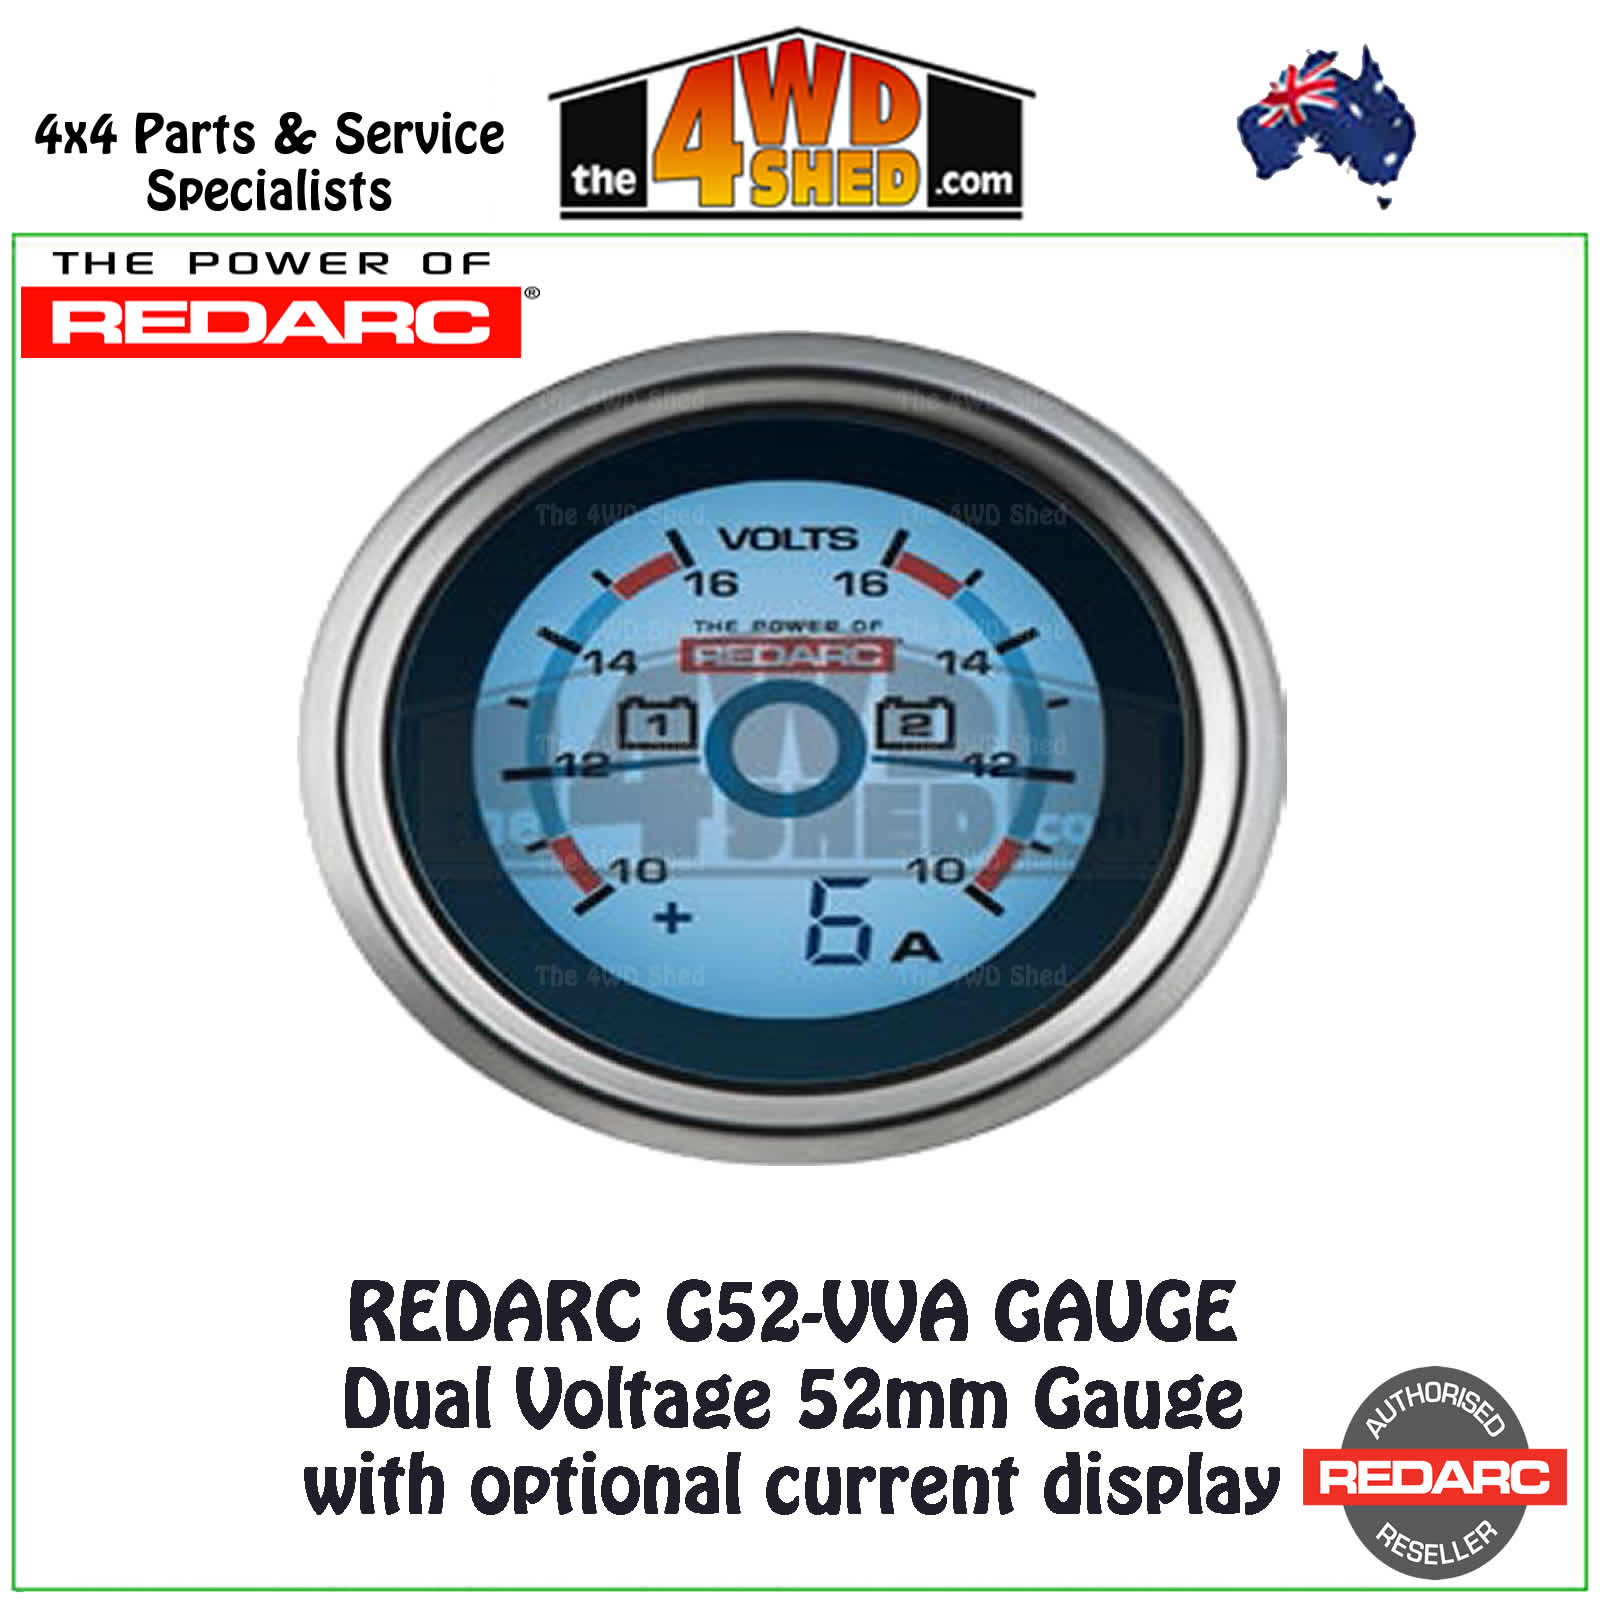 G52 VVA electrical gauges & accessories redarc bcdc1240 wiring diagram at webbmarketing.co